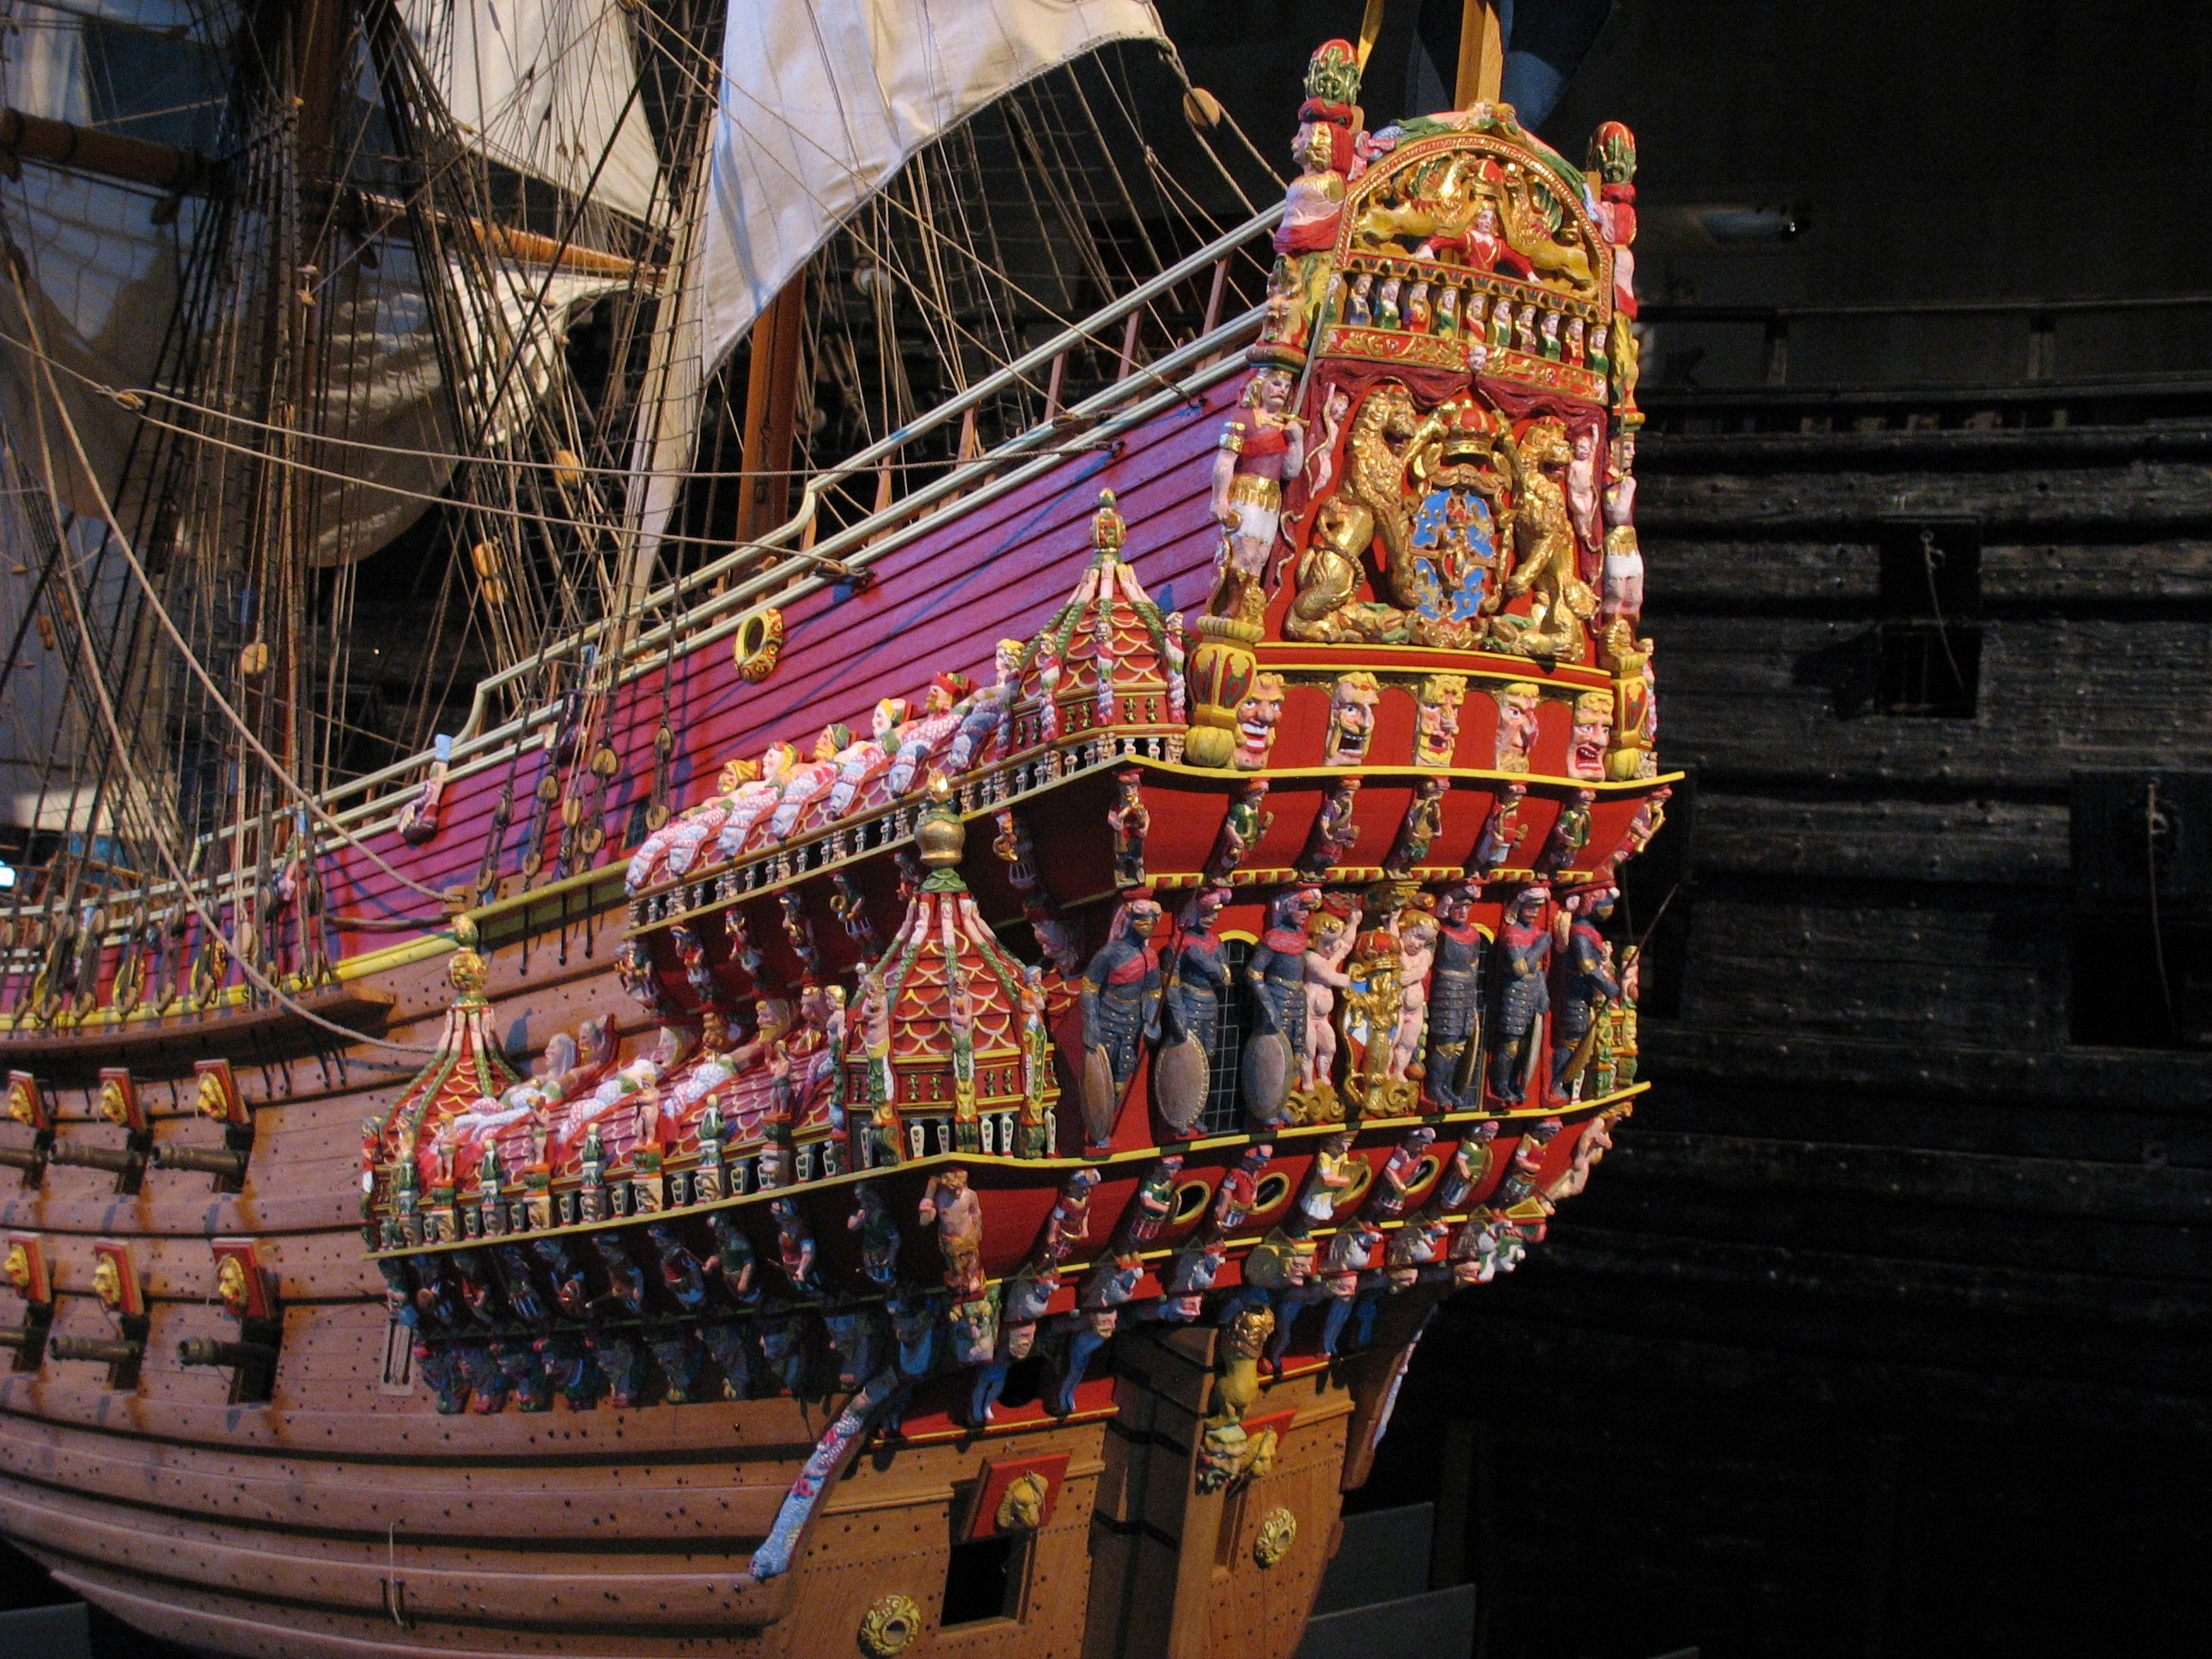 190214_Vasa_stern_color_model